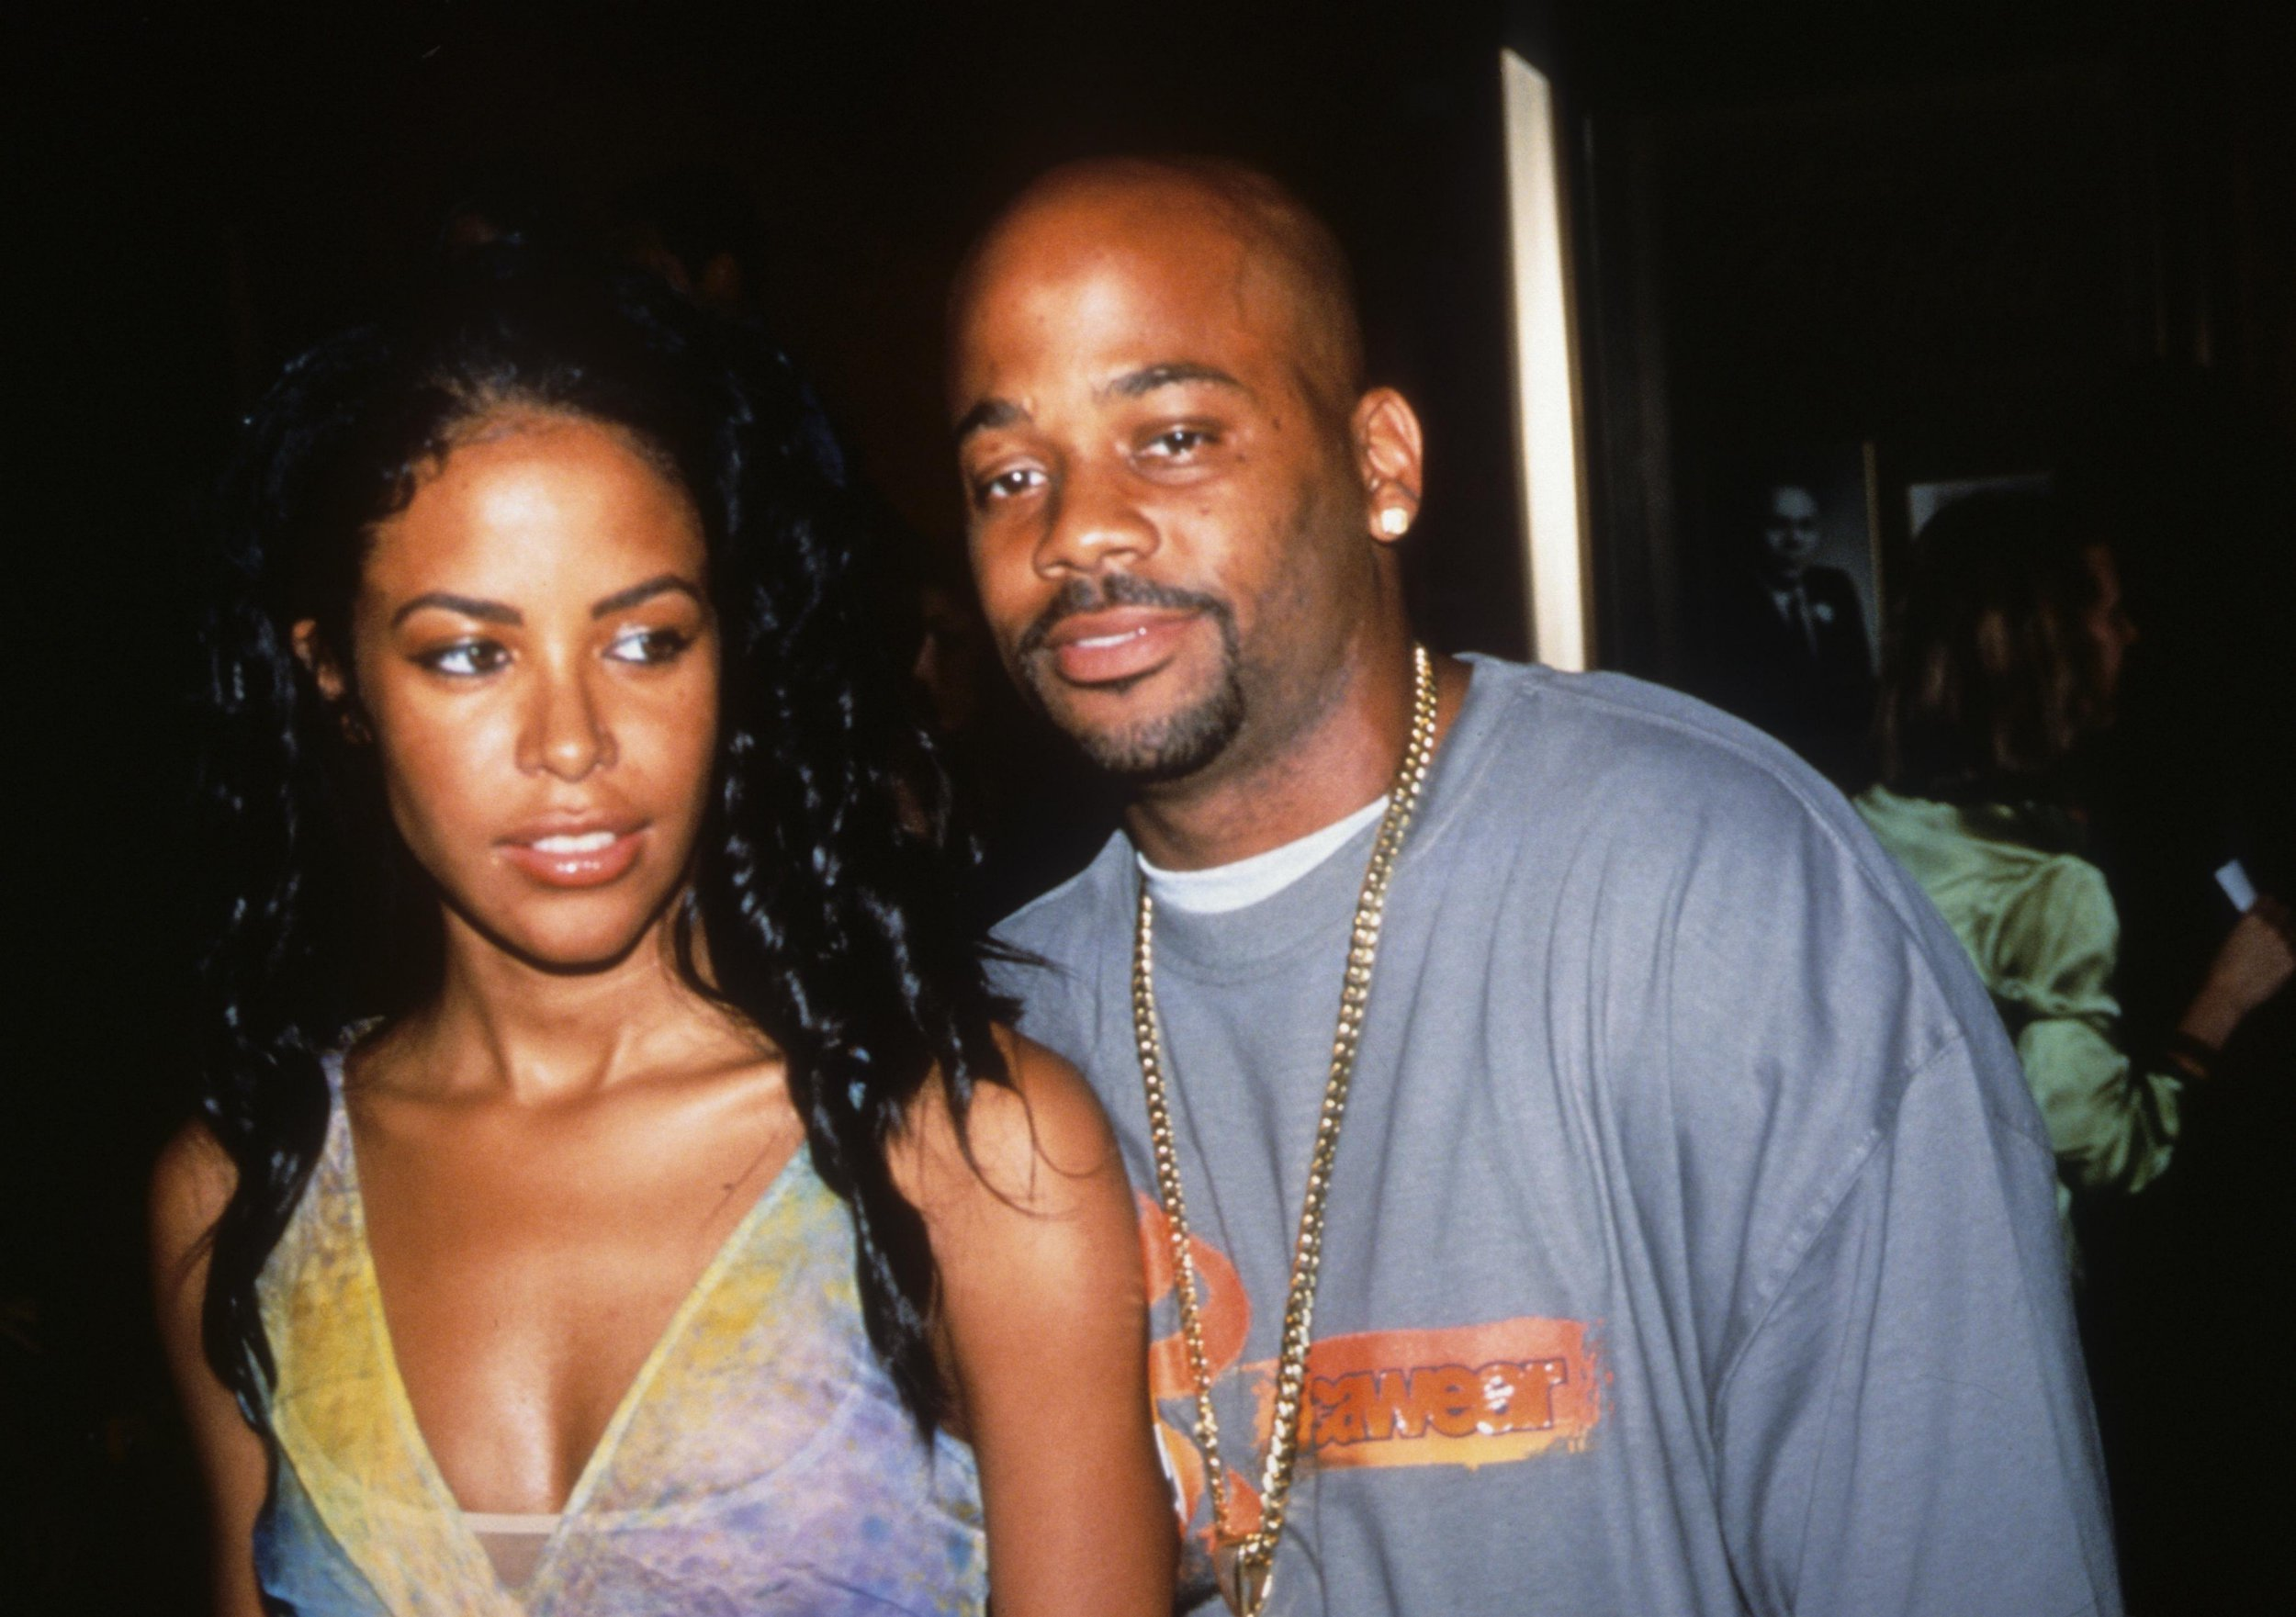 Singer Aaliyah (1979 - 2001) and Damon Dash (b.1971) attend the premiere of 'Planet of the Apes' at the Zeigfeld Theatre in New York, 2001. (Photo by Steve Eichner/Getty Images)